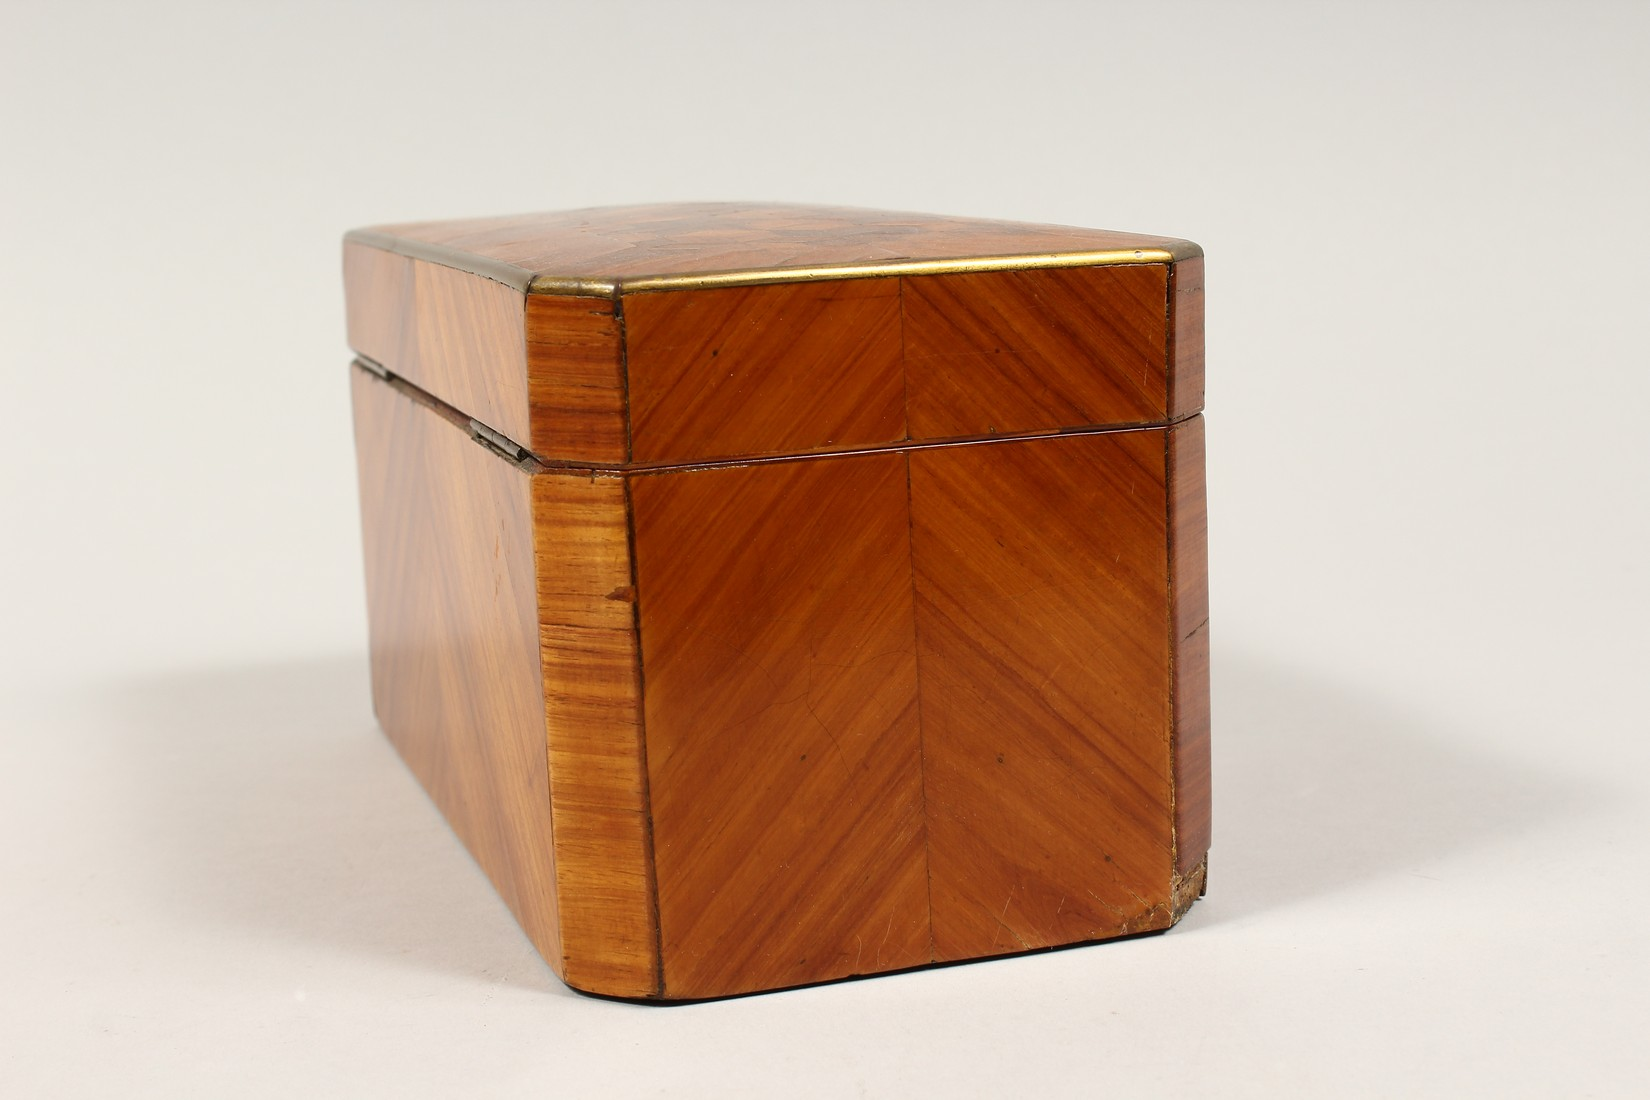 A 19TH CENTURY FRENCH KINGWOOD SERPENTINE-FRONTED TWO DIVISION TEA CADDY with Van Dyck pattern - Image 4 of 6